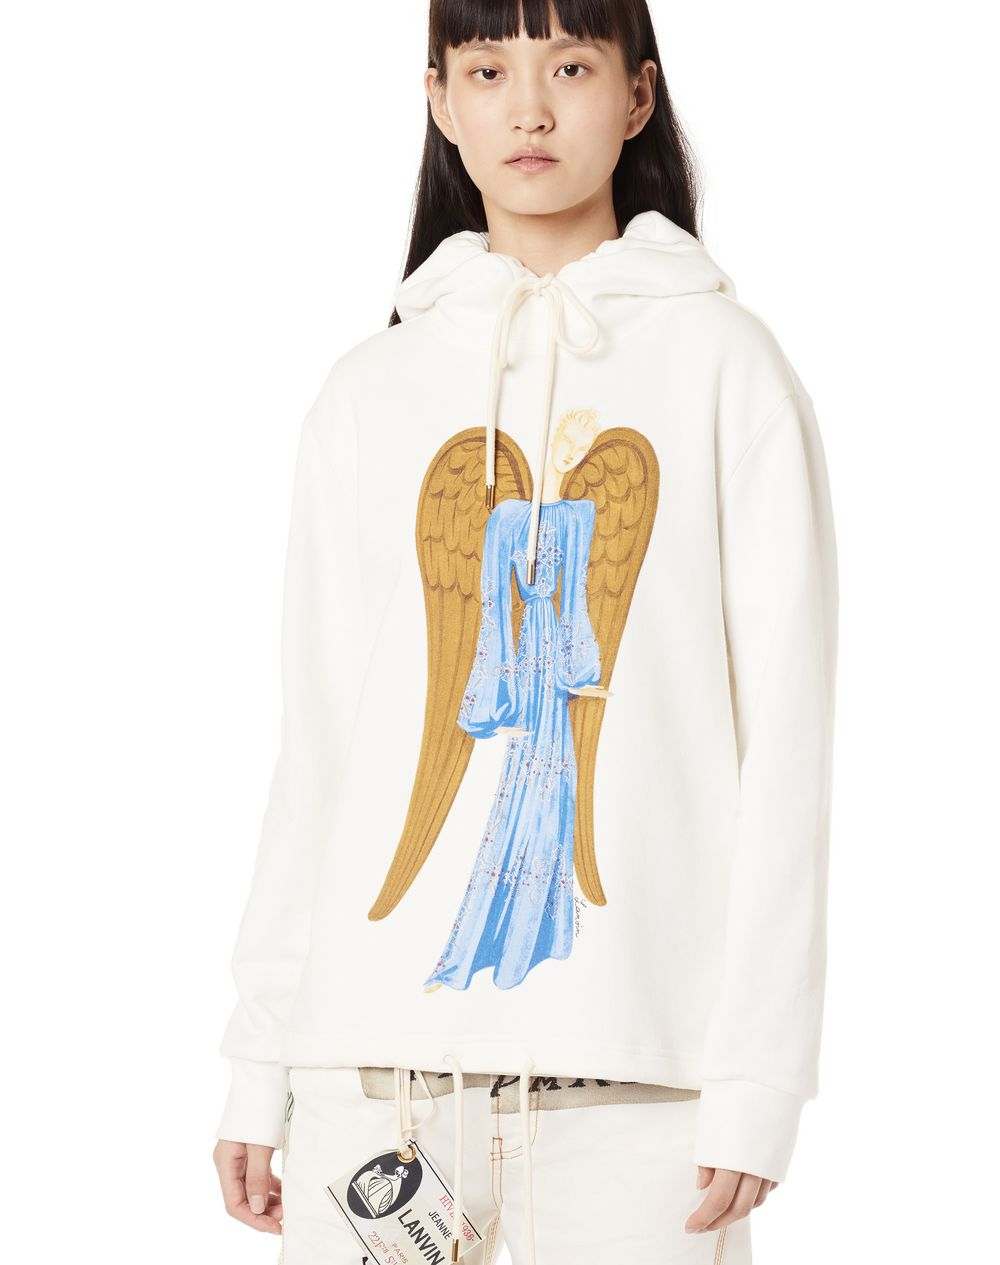 130 YEARS THE ANGEL PRINT HOODIE - Lanvin